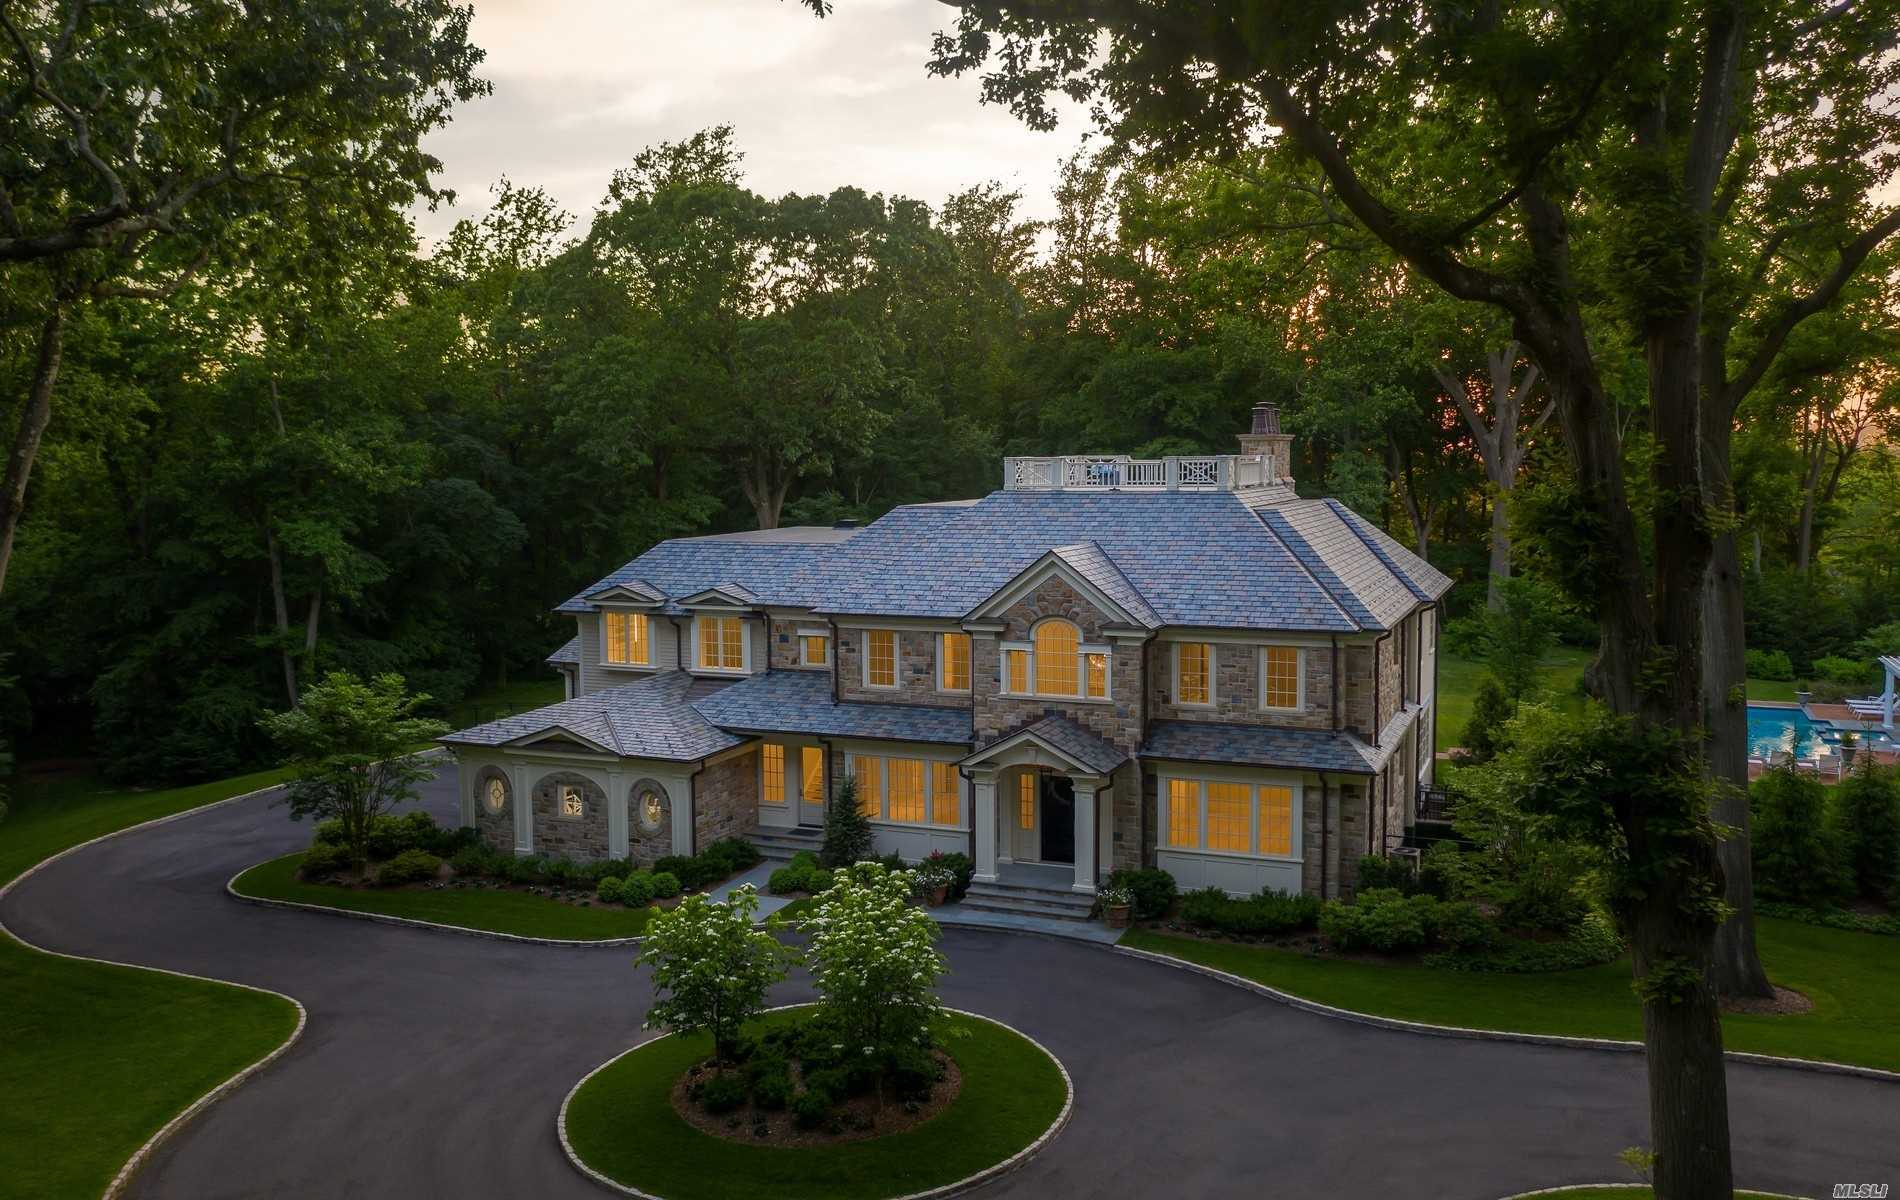 """New Construction! Extraordinary Custom Stone Colonial located in the Prestigious 160 Acre Gated Community of Spring Hill at Old Westbury. Unparalleled Quality! Vermont Slate Roof, White Oak Plank Floors, 26' Two Story Entrance Foyer, Detailed Moldings and Finishes Enhance Sophisticated and Beautifully Detailed Entertainment Rooms. Six Bedrooms En-suite plus a Lavish Master Suite features a Sitting Room, Two Closet Rooms and Marble Master Bath. Library, Guest Wing, Four Fireplaces. The Lower Level offers Great Entertainment Space with an Attractive 1000 Bottle Glass and Mirror Wine Room, 75"""" TV, 2 Lane AMF Professional Bowling Lanes and Glass Enclosed Gym. Six Professional Landscaped Acres Offer Privacy and a Luxurious Outdoor Setting. Covered Porch, Expansive Patio and Beautiful Pool Setting. Property has been Prepared for a Tennis Court. Designed, Built and Landscaped by Kean Development. Gated and Manned Security, Lake and Boat House. Resort Lifestyle! Roslyn School District."""